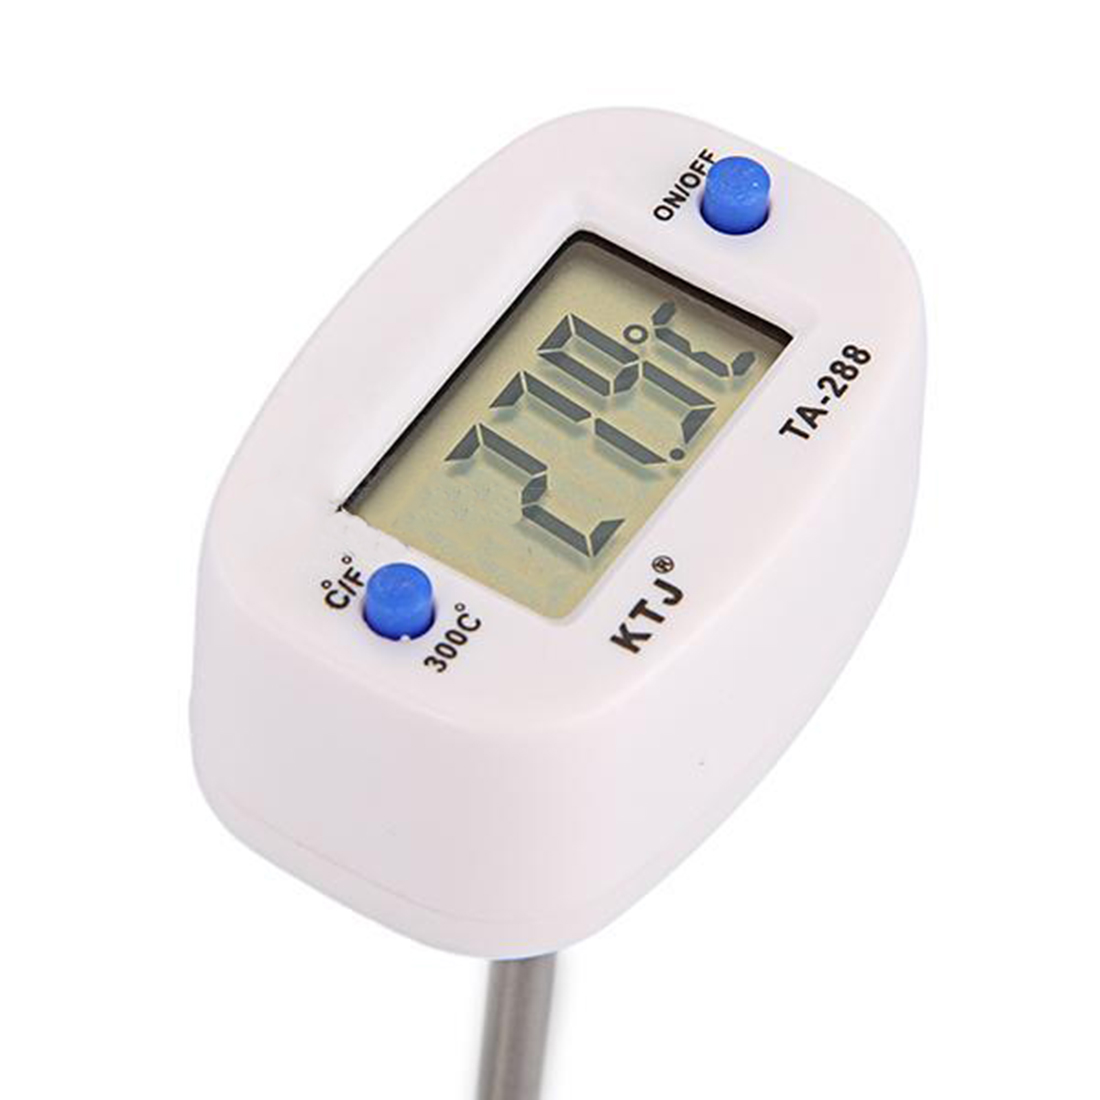 New Hot Digital Probe Cooking Thermometer Food Temperature Sensor For BBQ Kitchen LCD Display(China (Mainland))